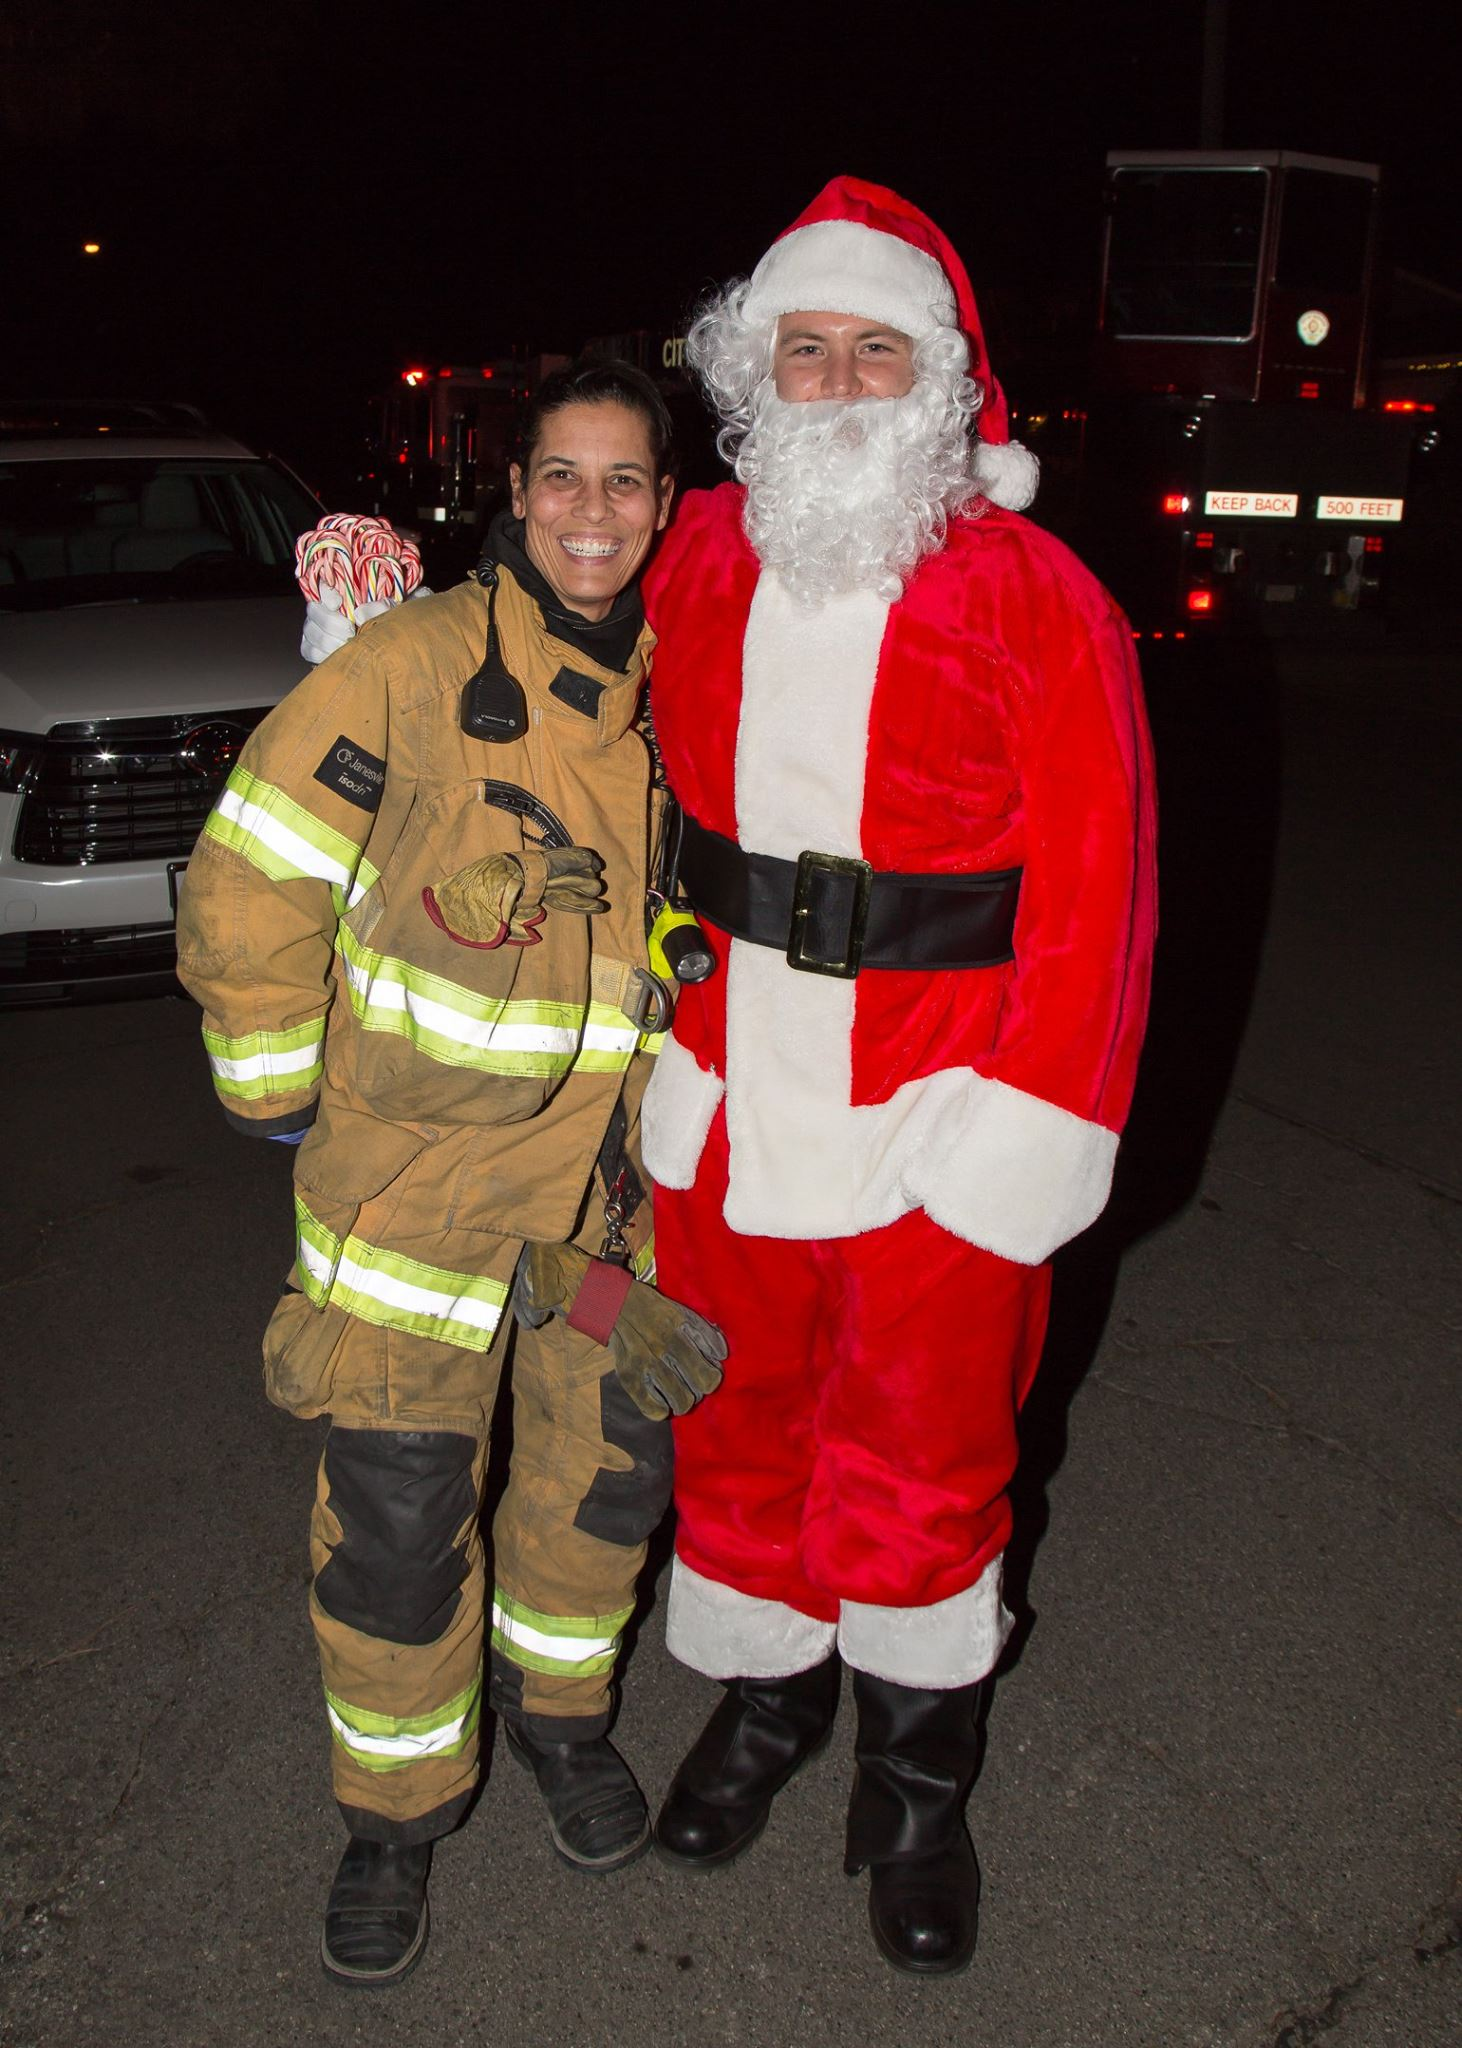 Santa and Fire Fighter